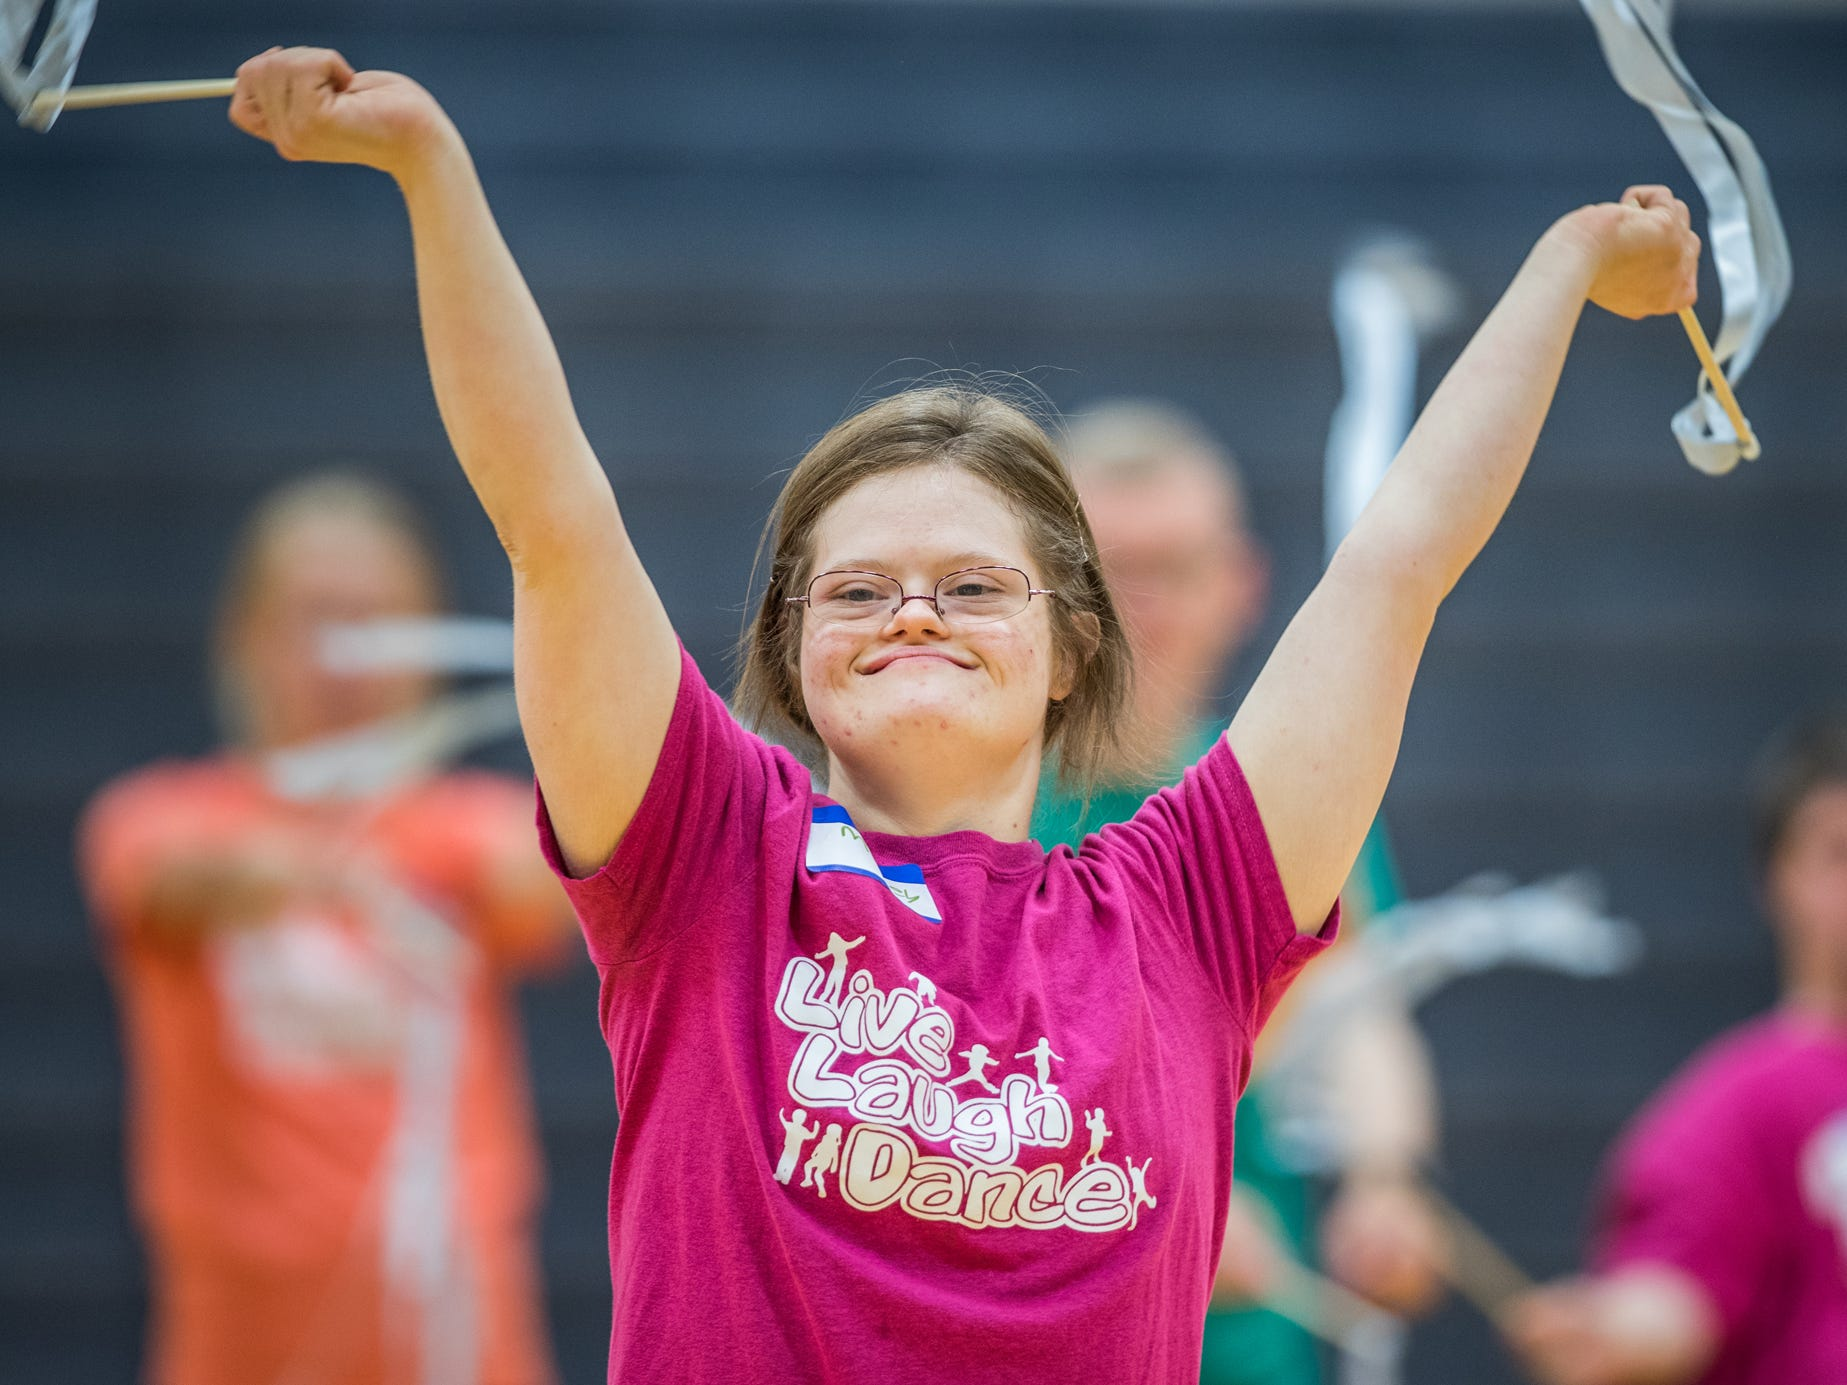 Mickey Deputy waves ribbons in preparation for an upcoming dance performance during Live Laugh Dance on Tuesday, July 10, 2018. The summer program, for young adults with Down syndrome, promotes movement and social interaction through dance. This is the eighth year of the program that was started by IUPUI.